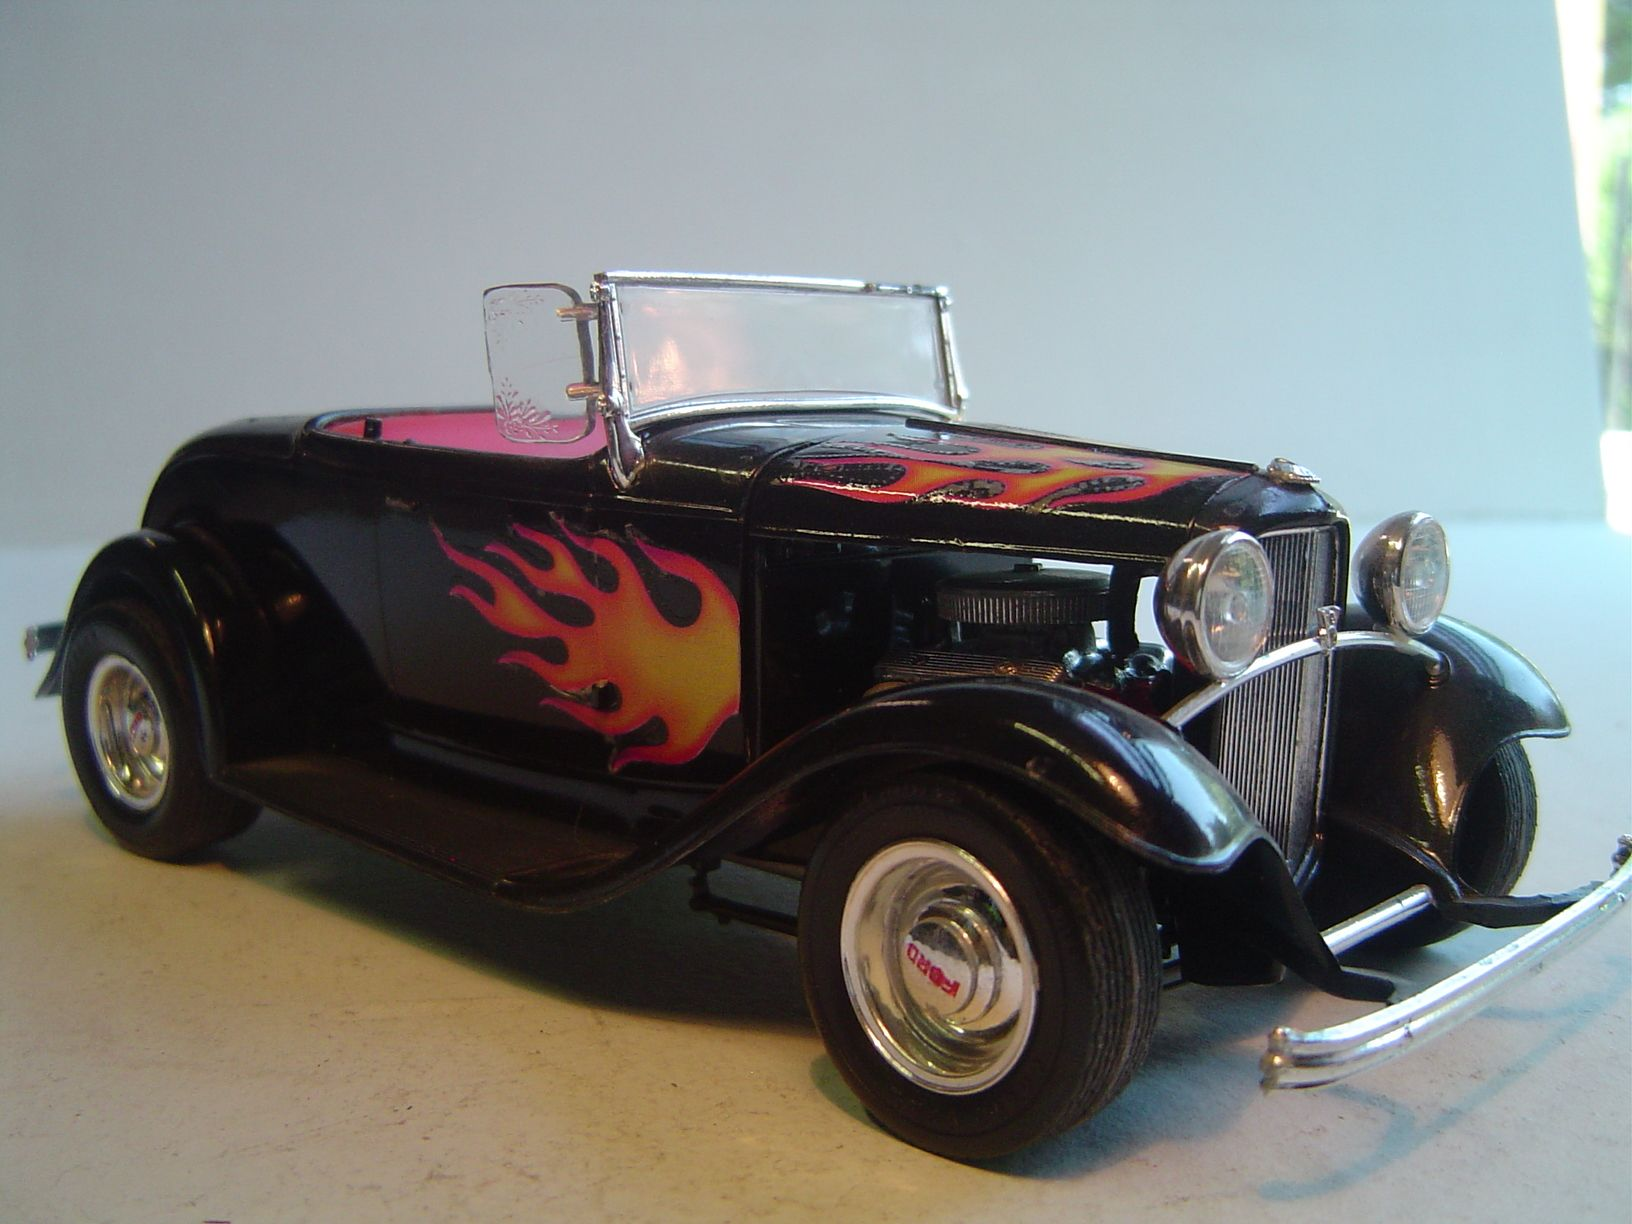 32 Ford Roadster Model Kits Cars 32 Ford Roadster Kit Cars